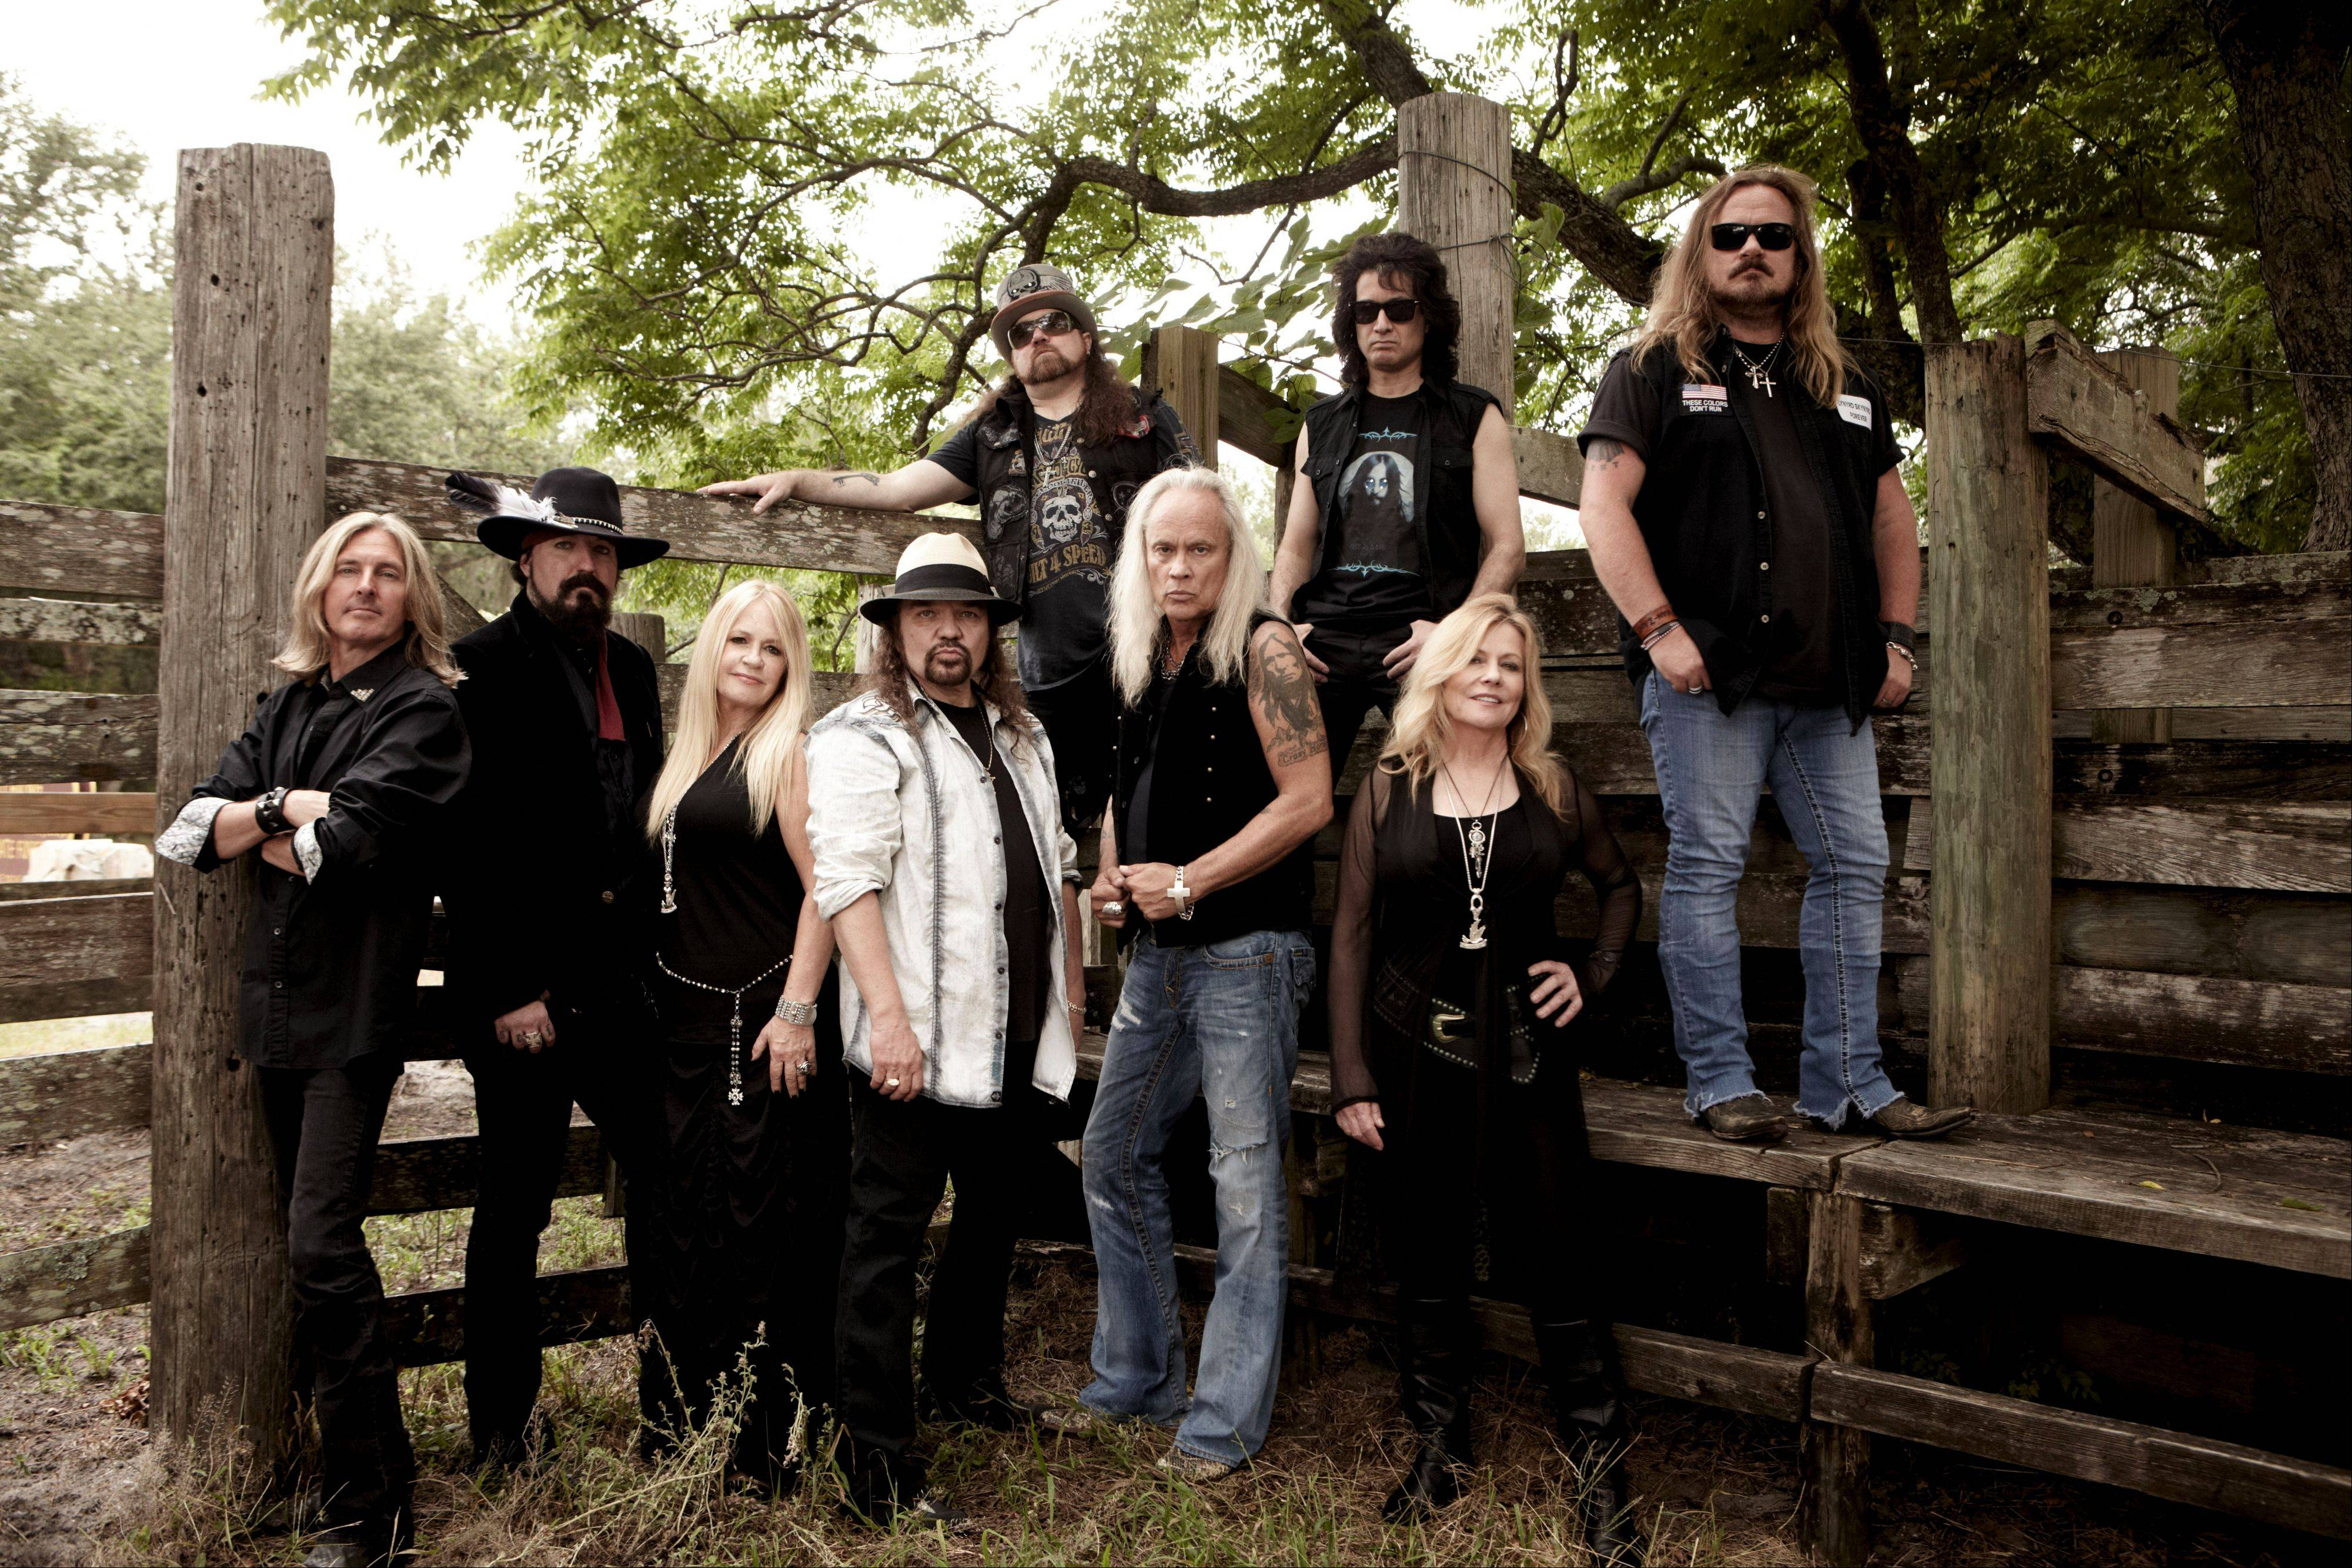 Lynyrd Skynyrd plays on the same bill with John Kay & Steppenwolf at Festival Park next to the Grand Victoria Casino in Elgin on Sunday, Oct. 13.